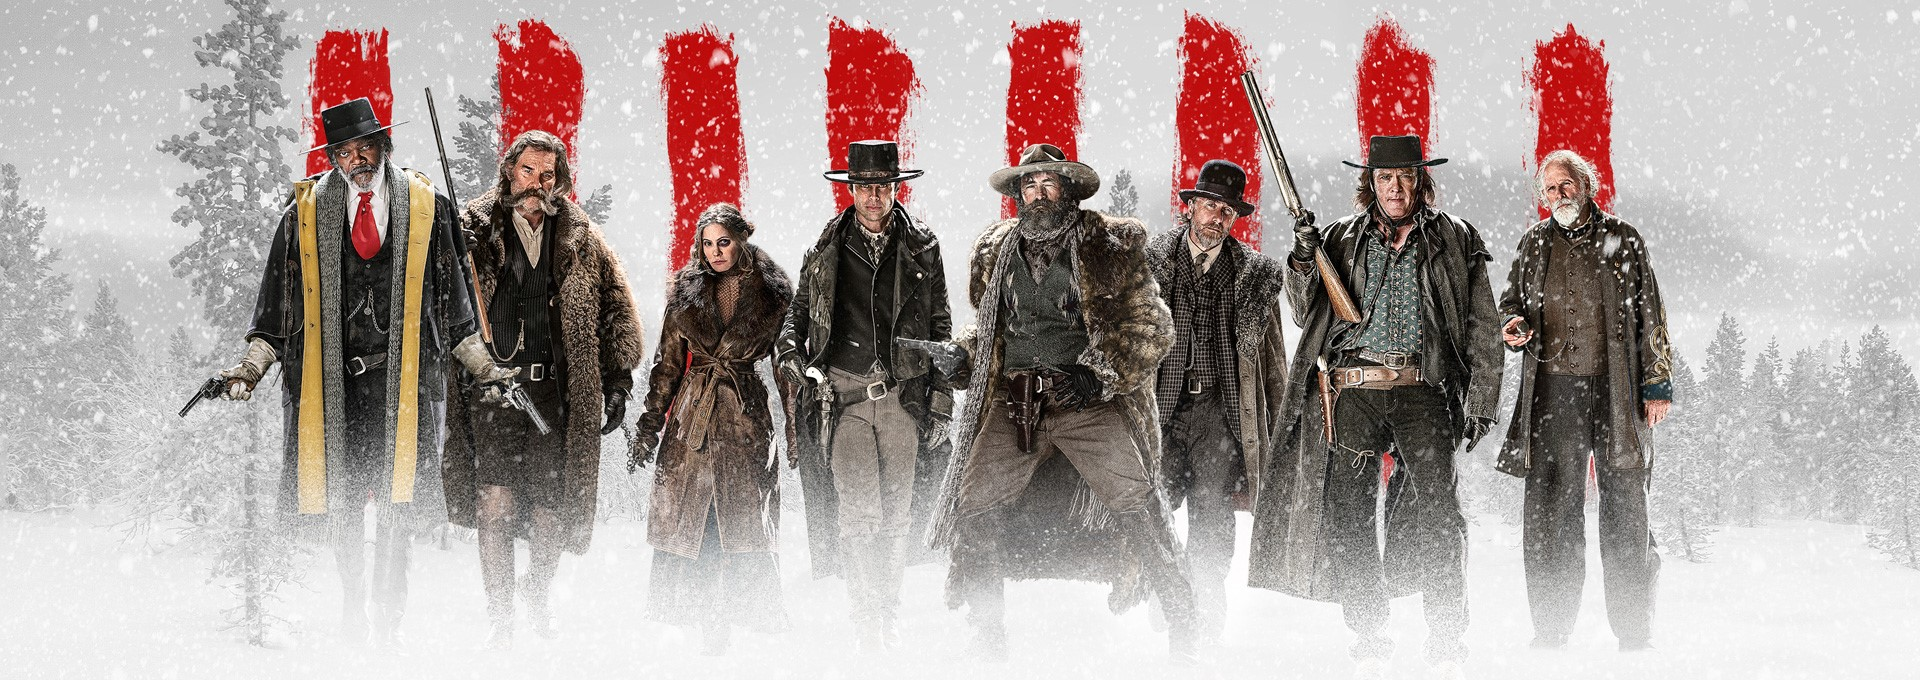 The Hateful 8 (2015) Filmkritik Slider